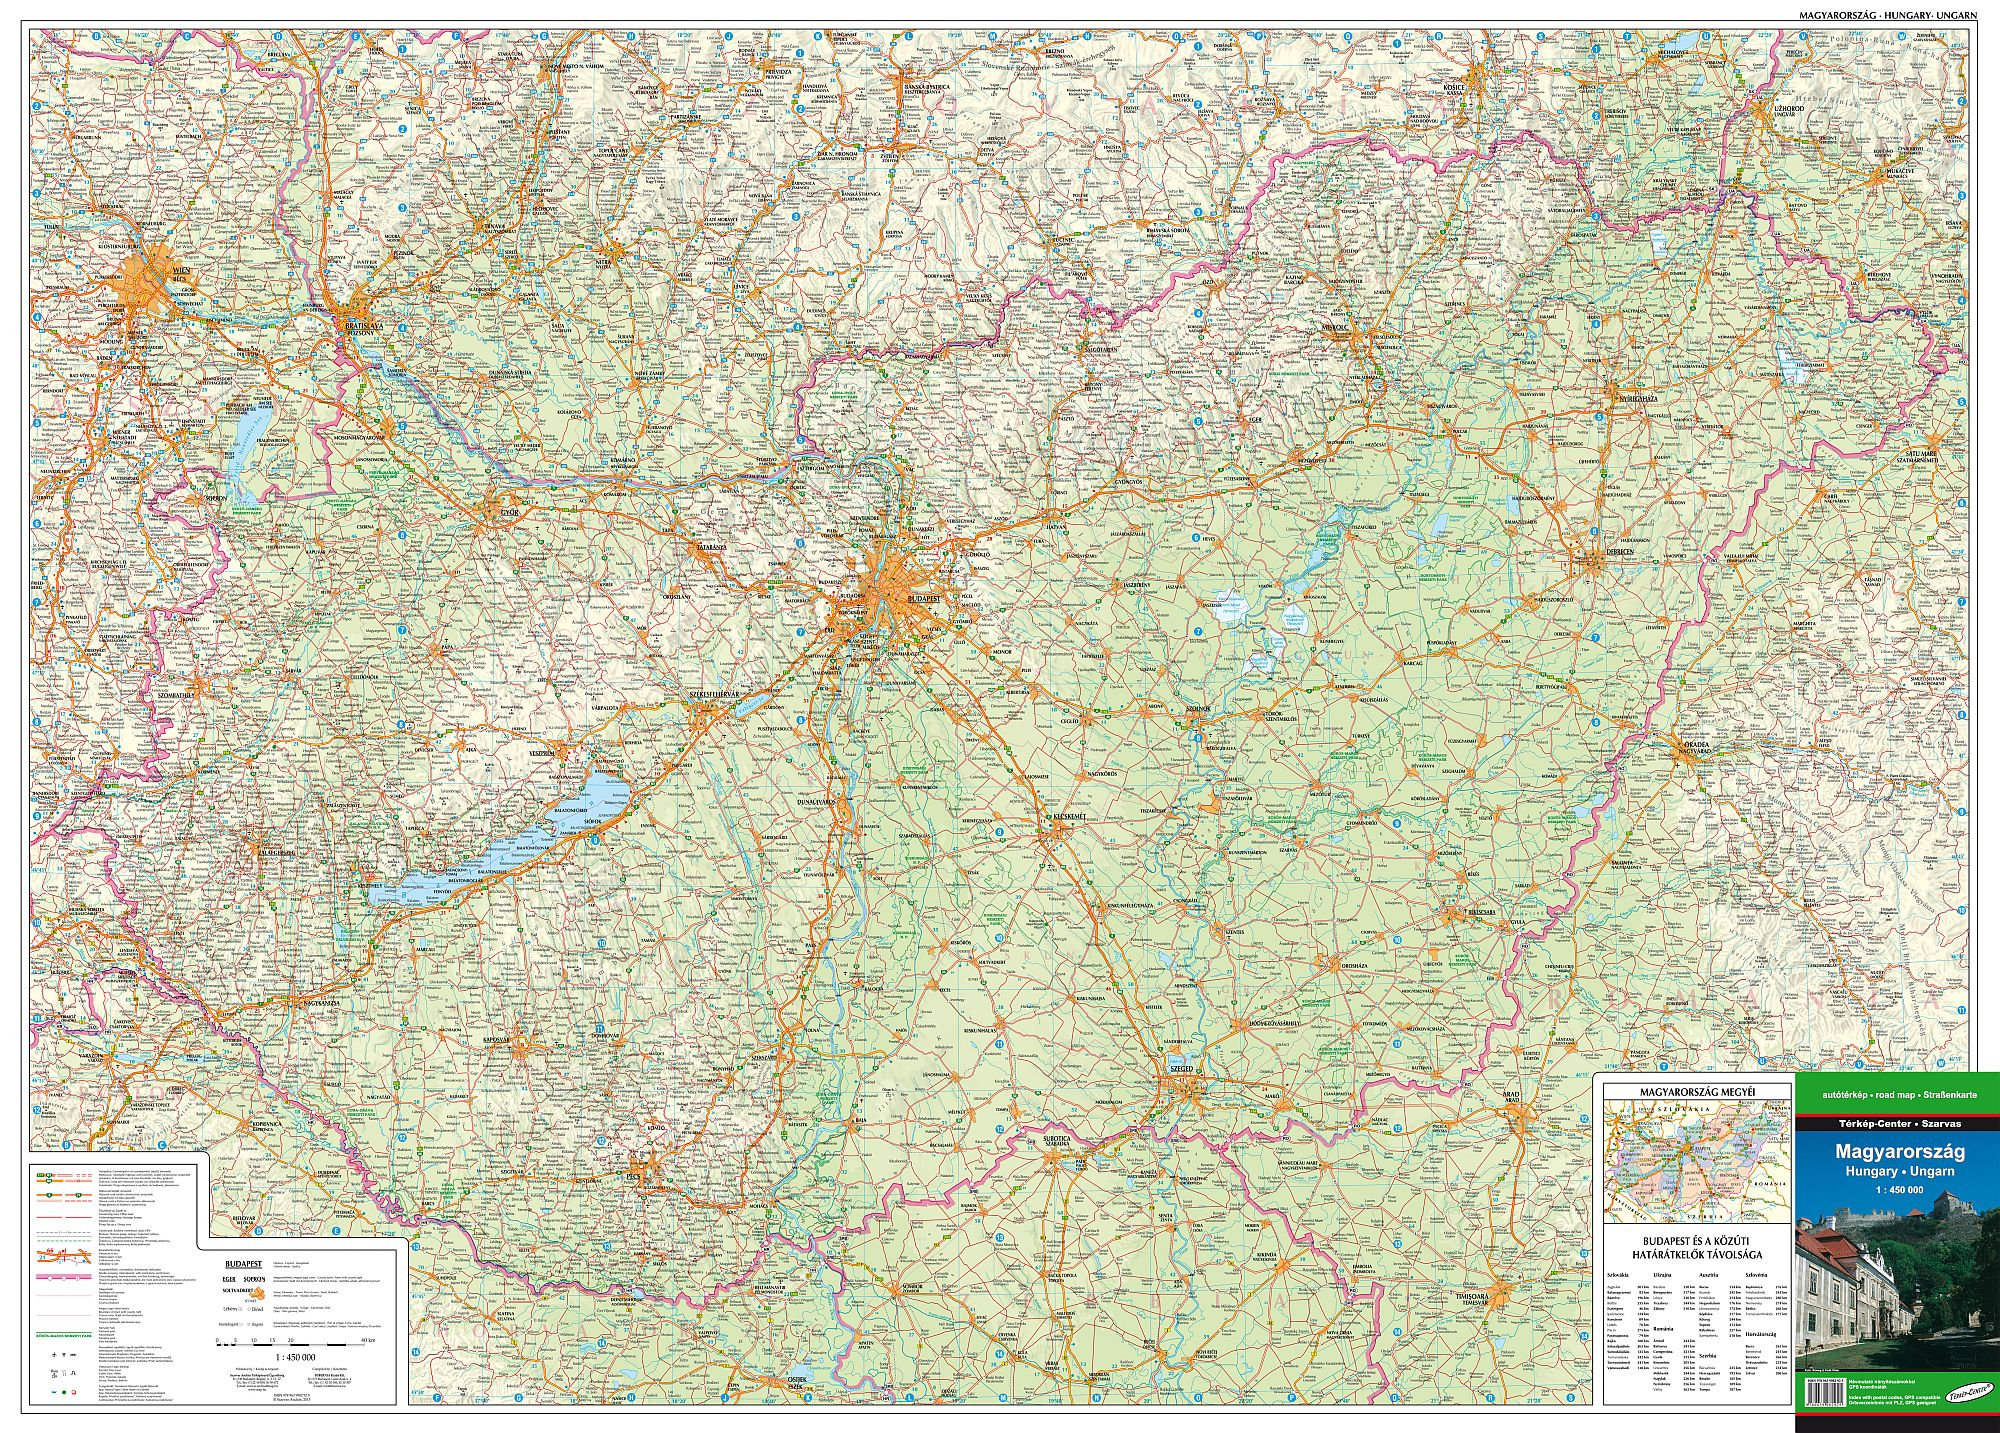 Detailed GPS compatible road map of Hungary for mobile devices